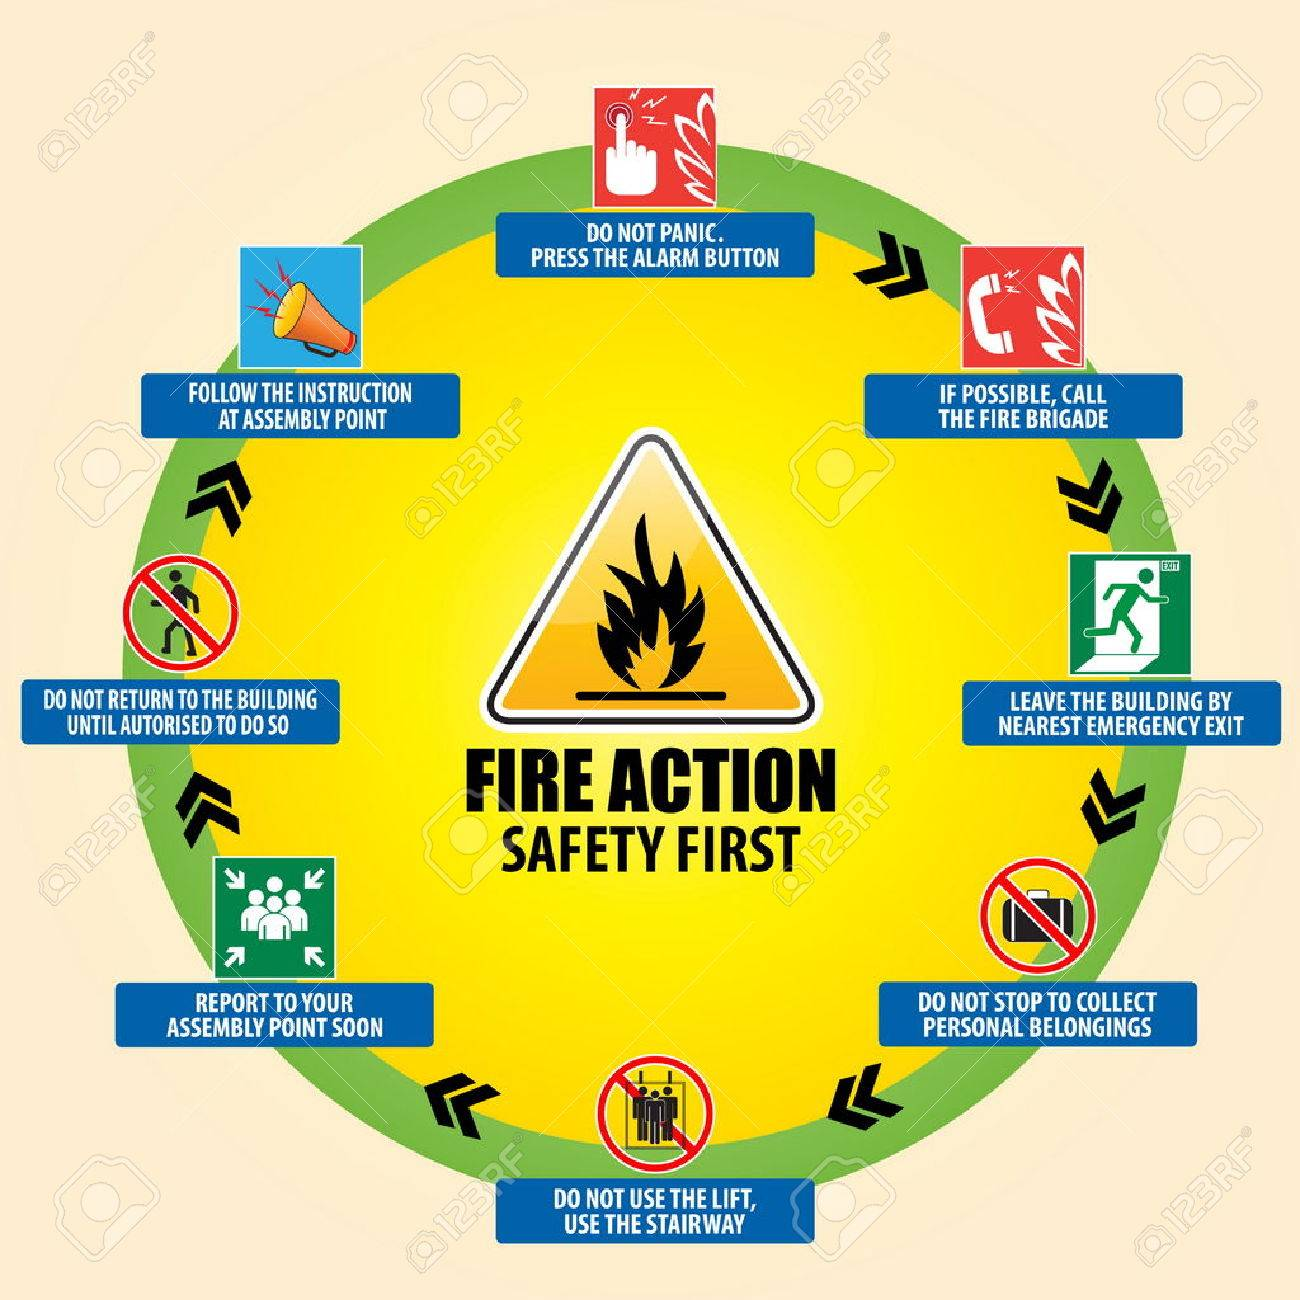 FIRE ACTION - 40222312